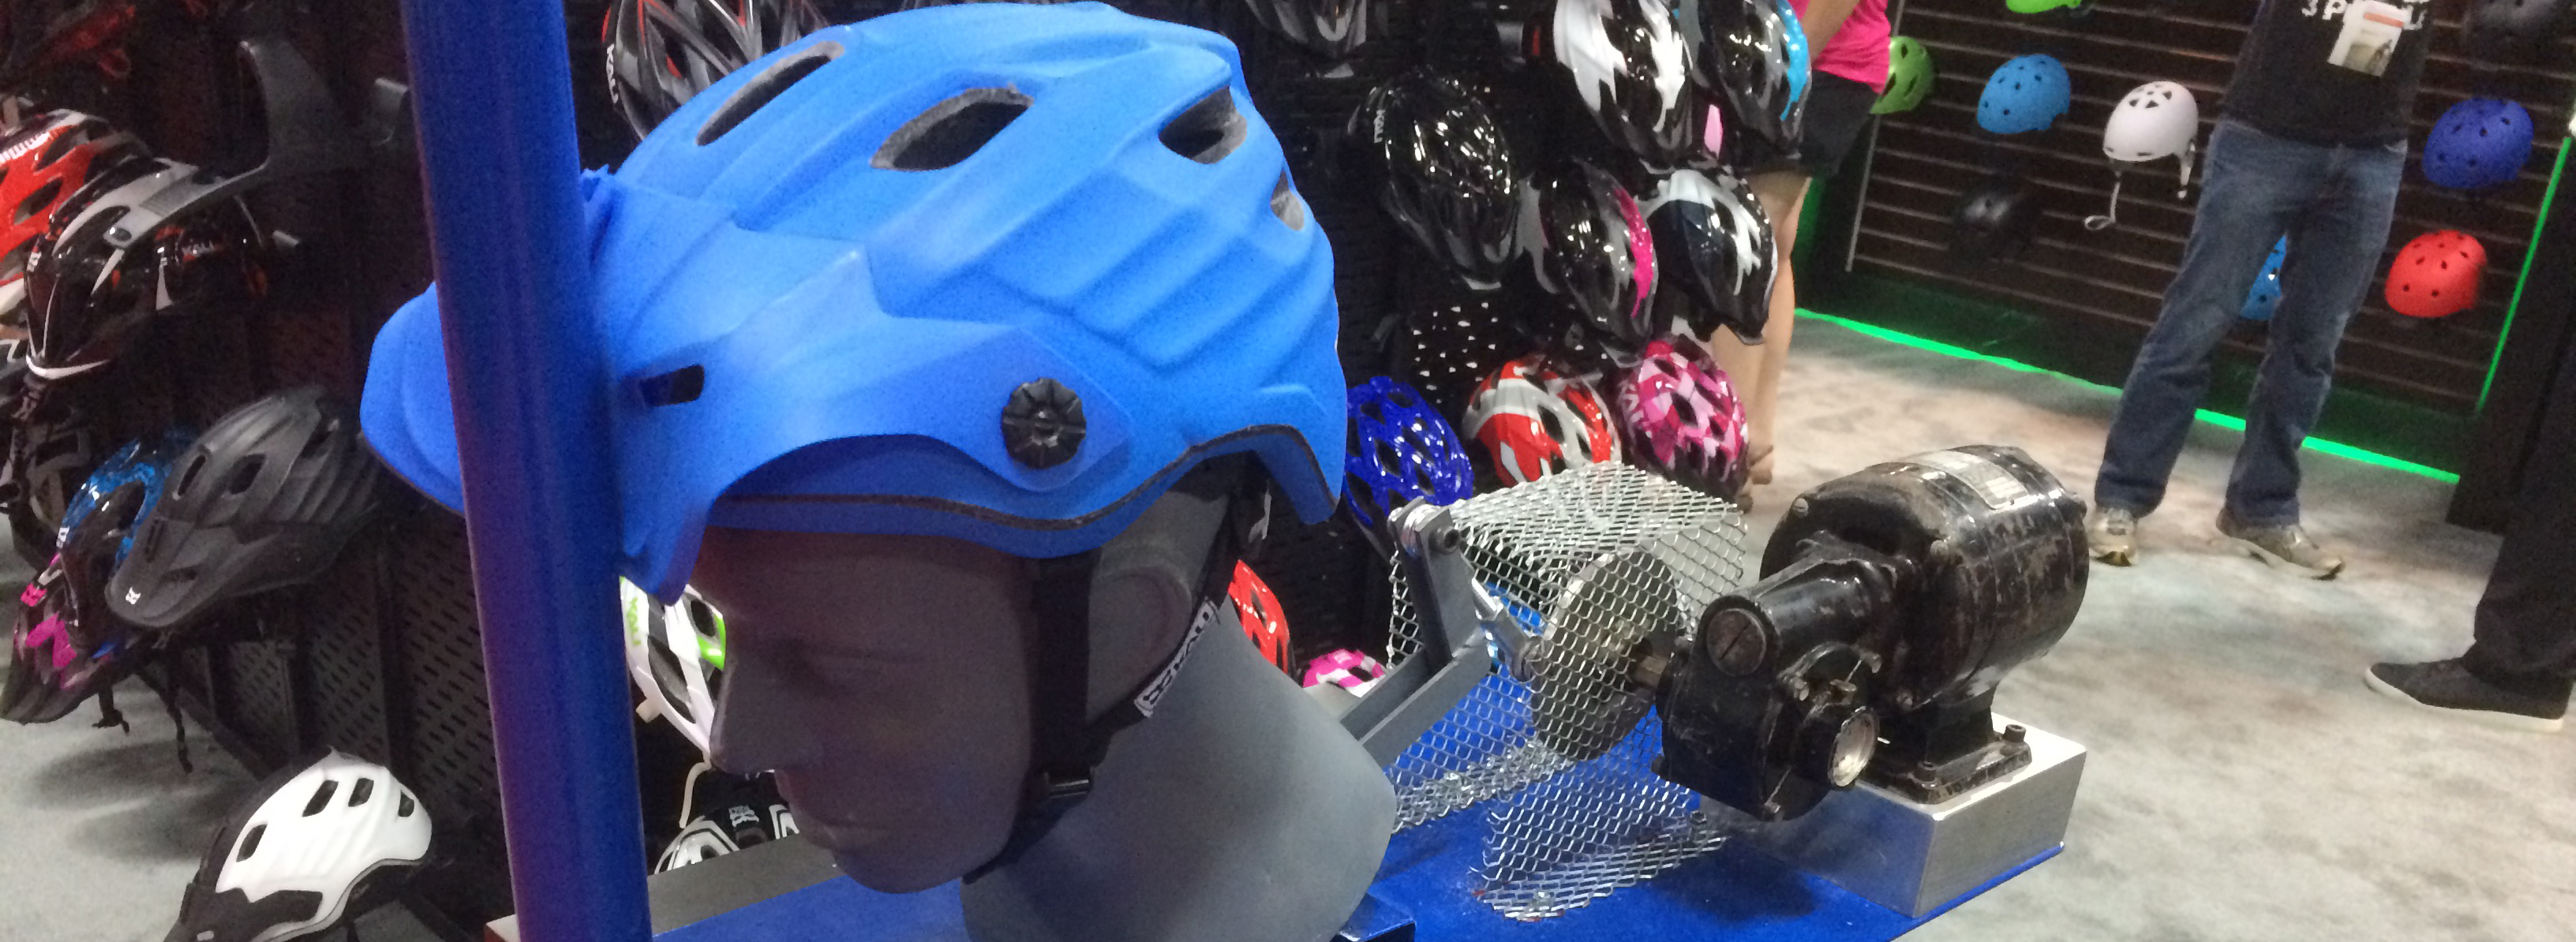 Cy Whitling reviews Interbike 2015 for Blister Gear ReviewCy Whitling reviews Interbike 2015 for Blister Gear Review